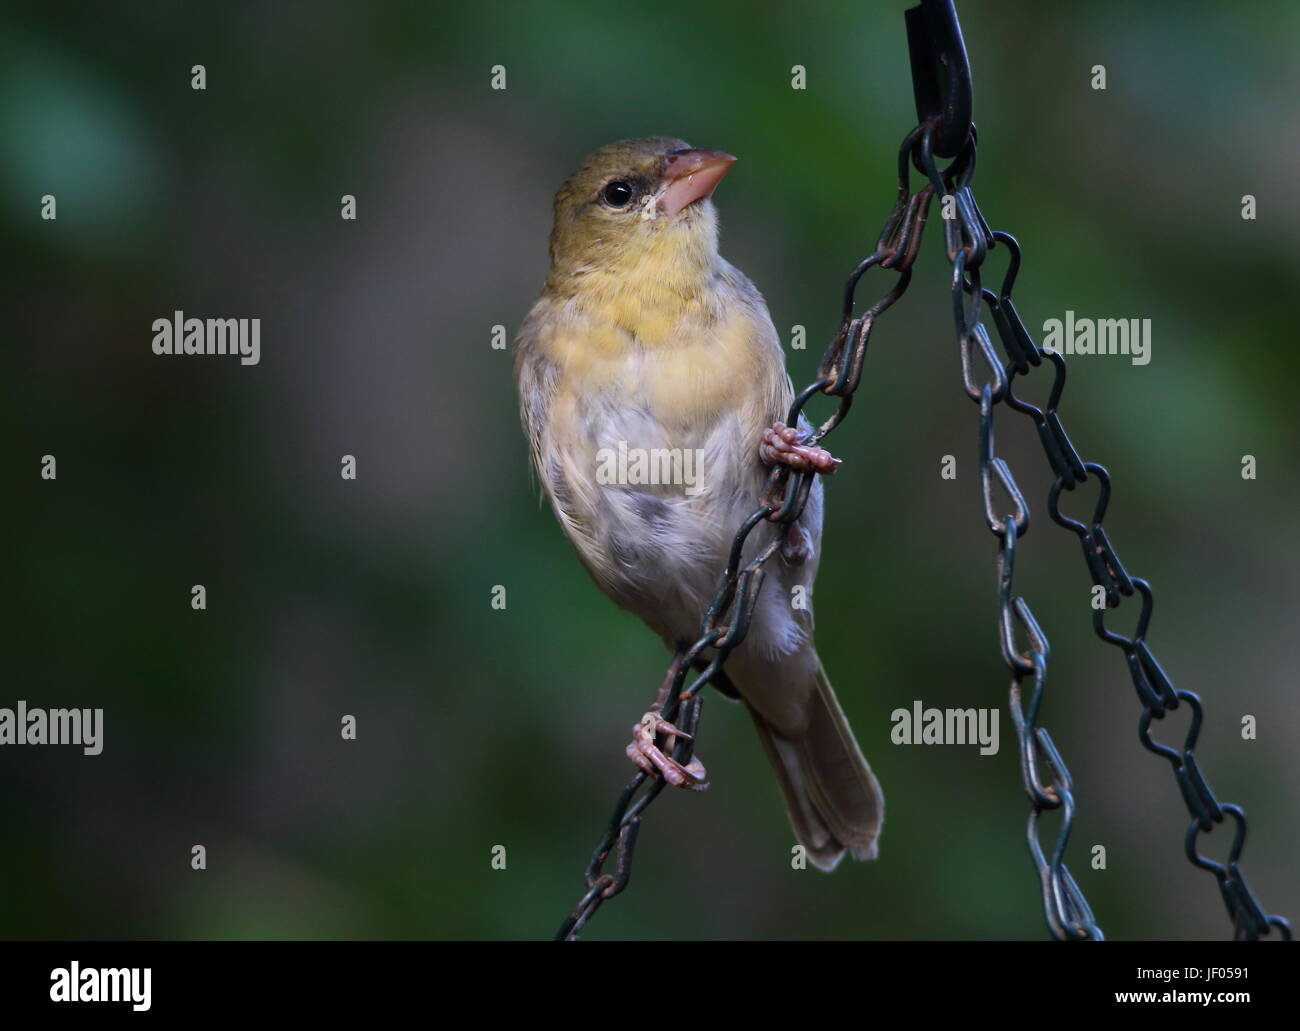 A bird perched on a chain in landscape format with clear green background and copy space - Stock Image